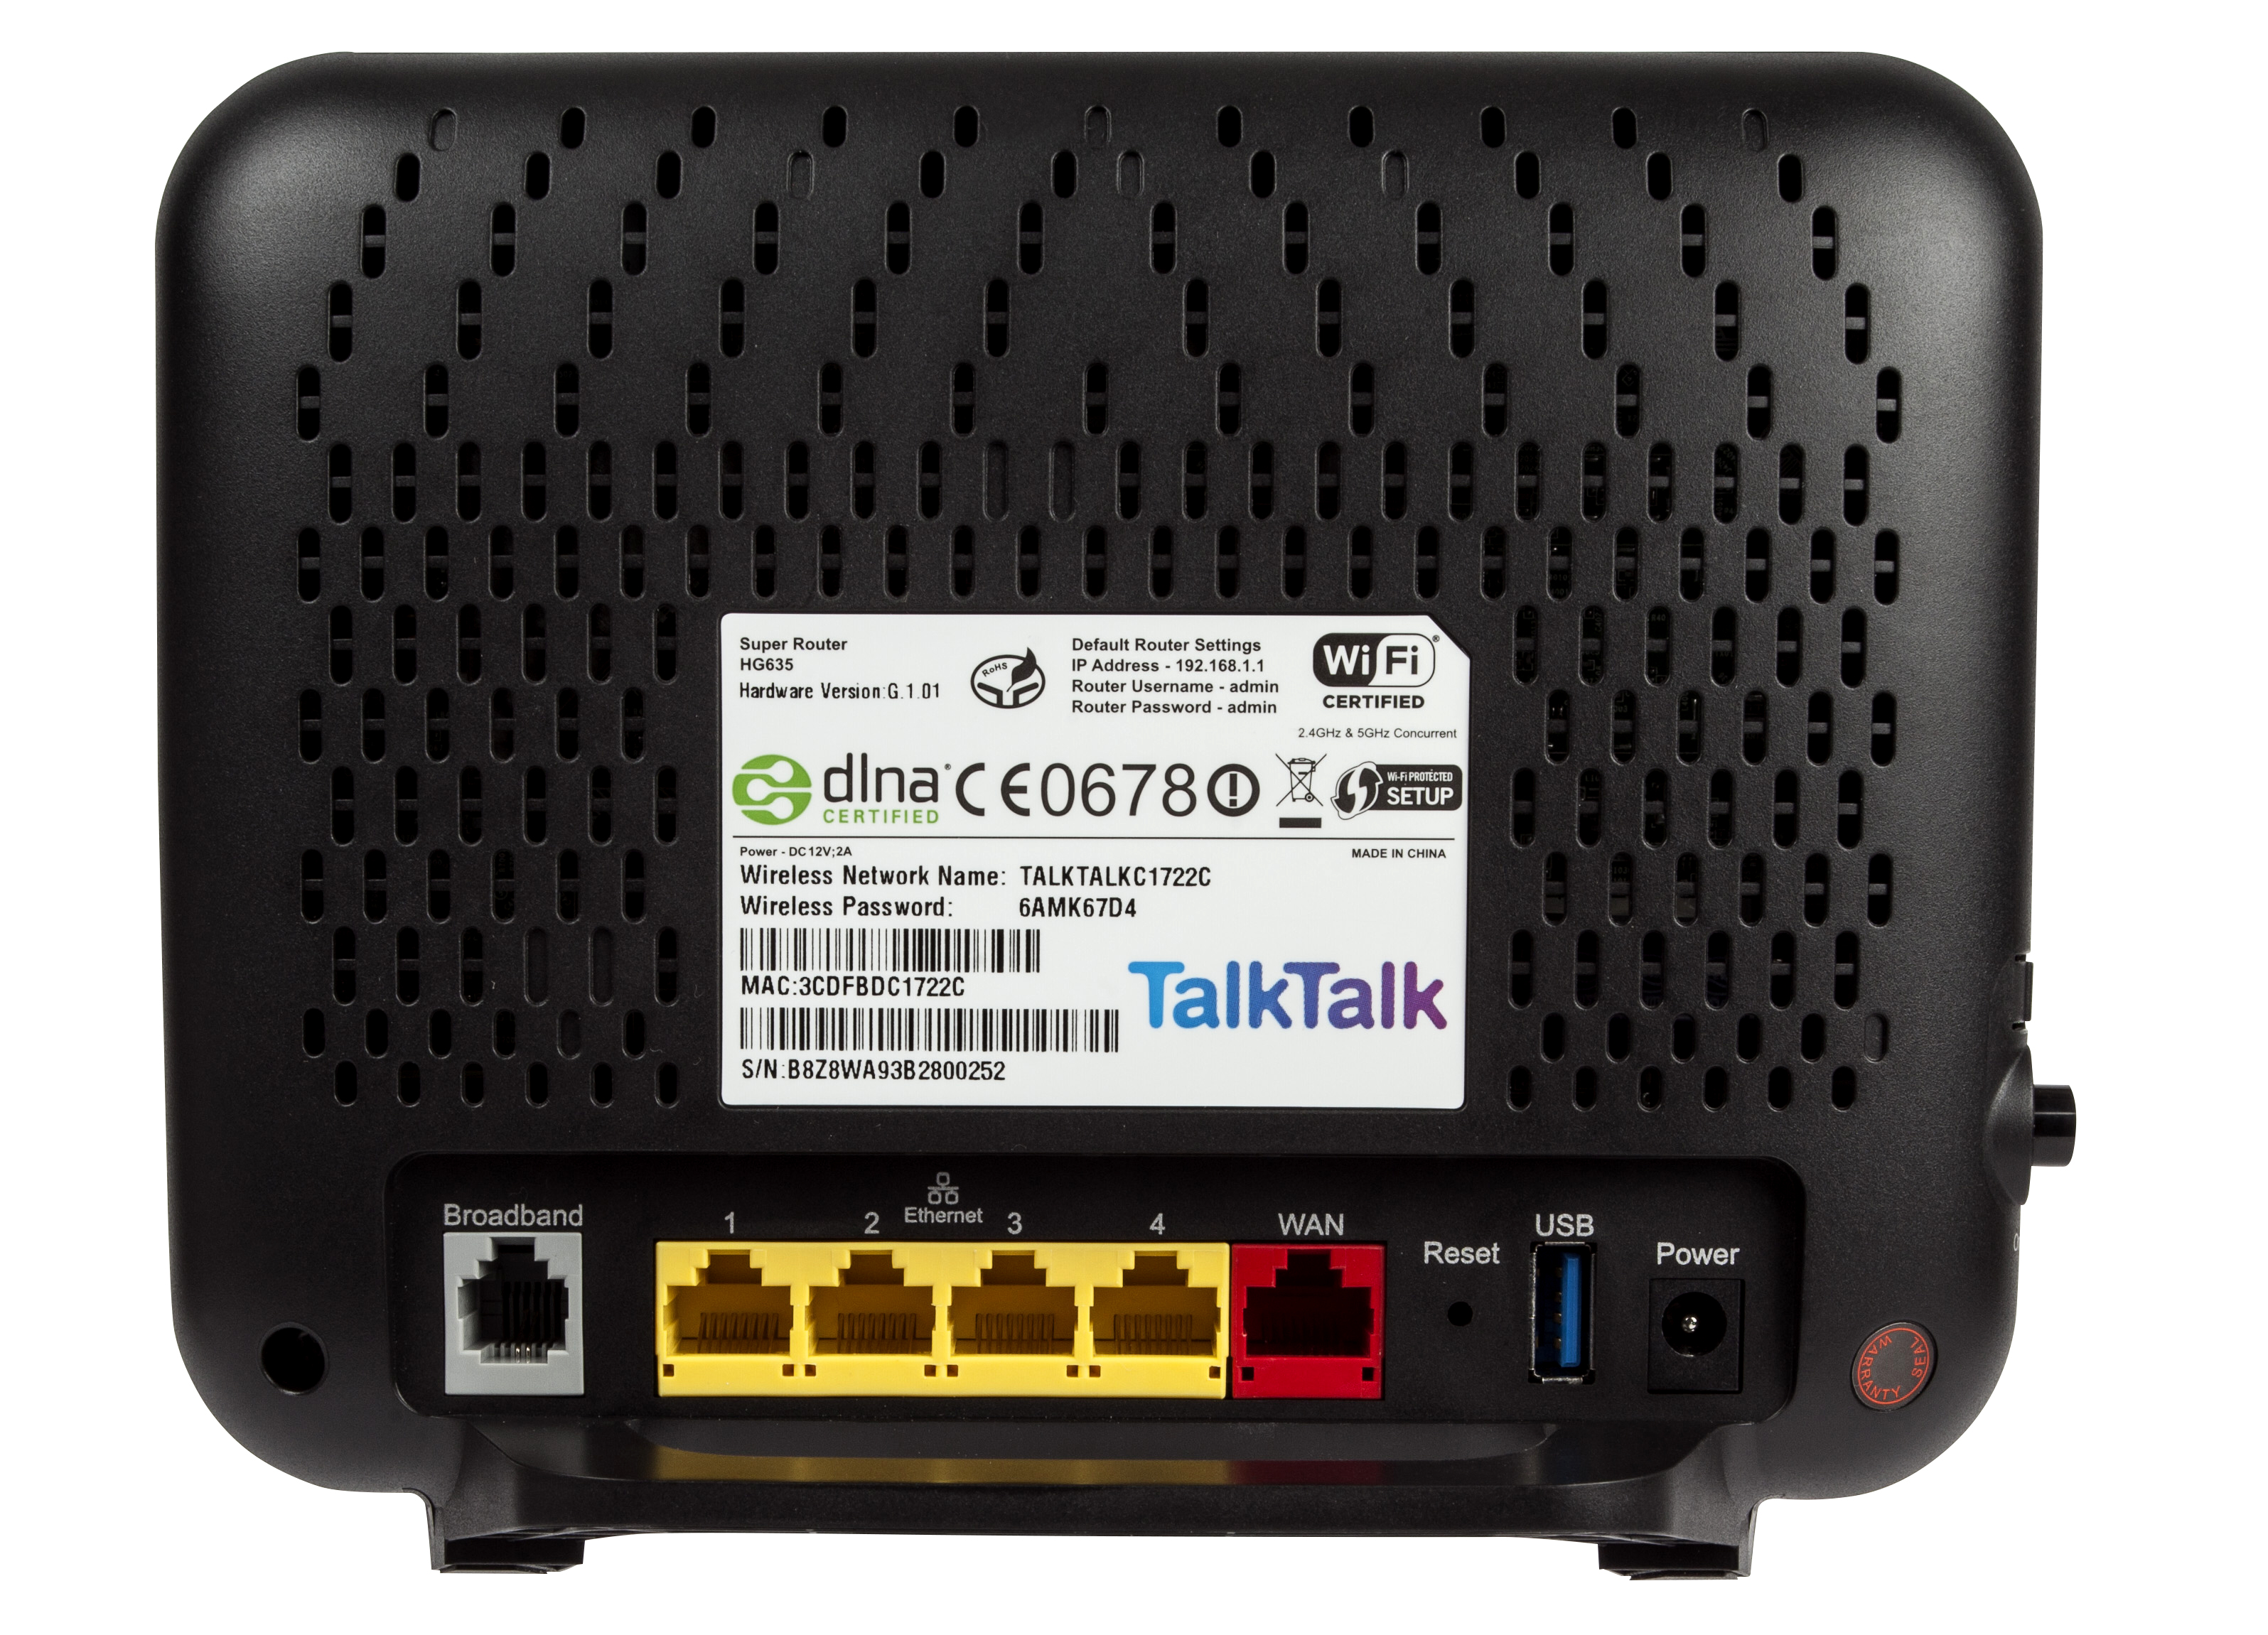 Talktalk hg635 super router review expert reviews for What does spec home mean